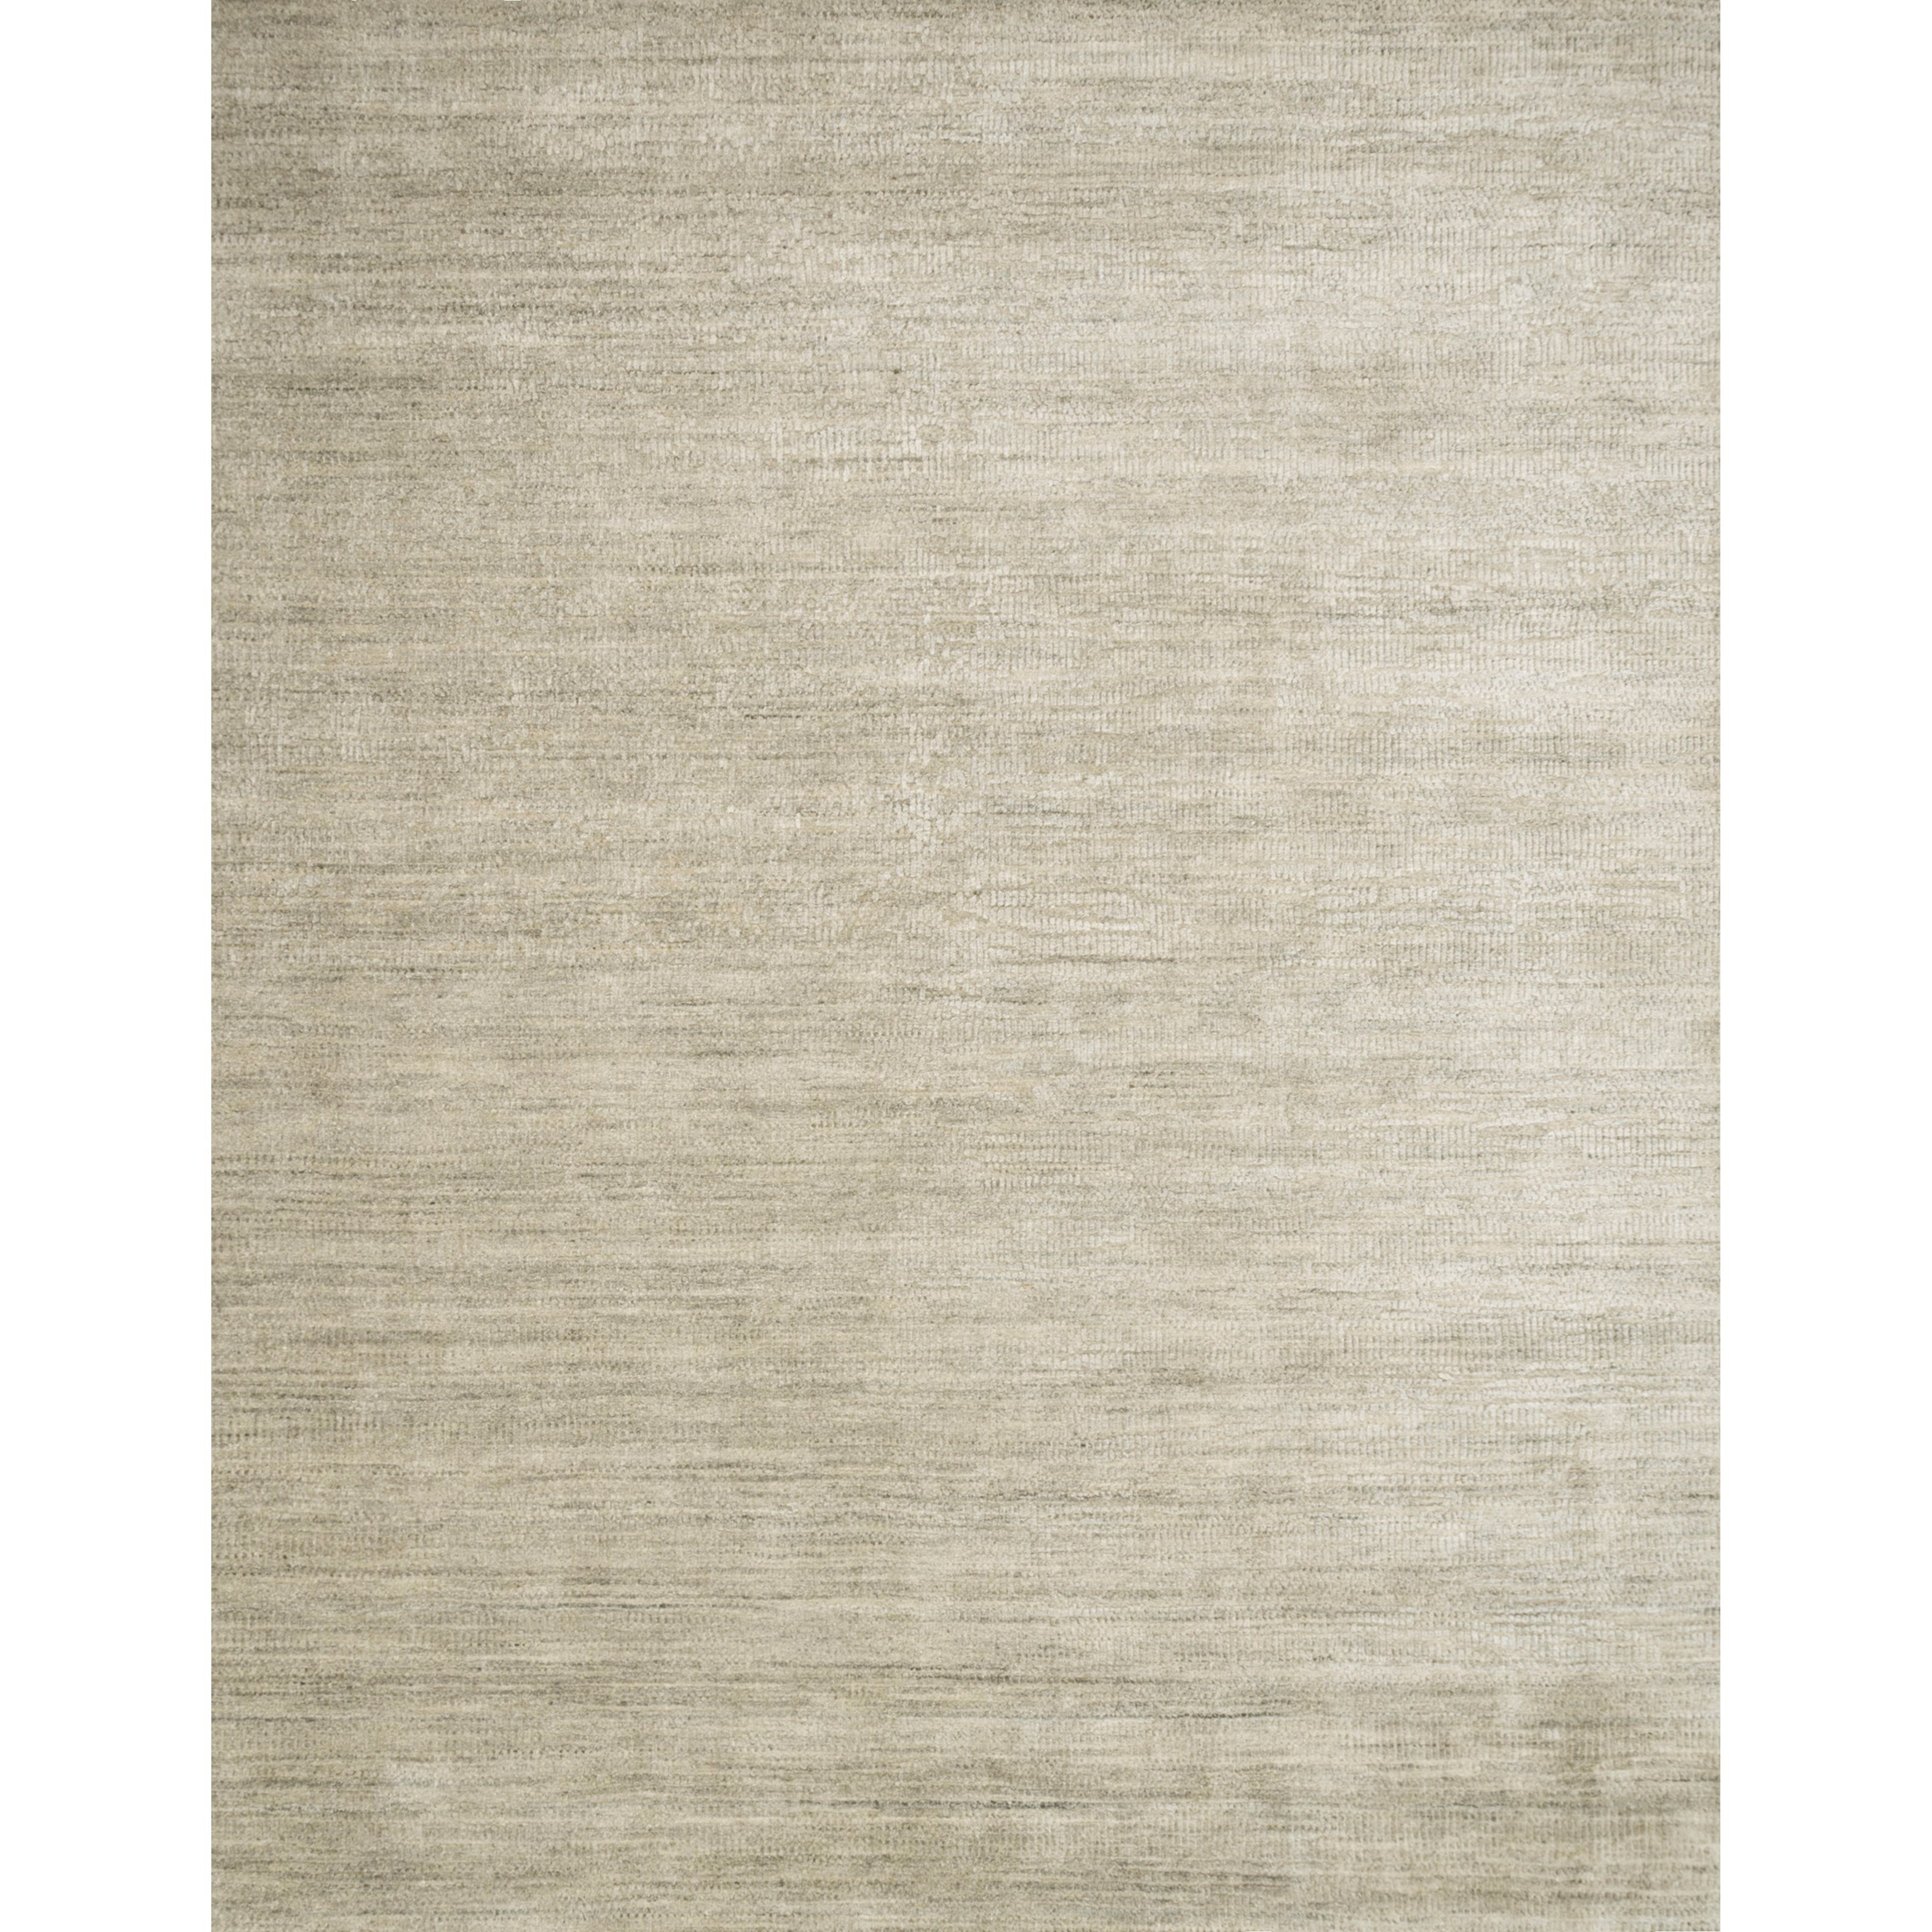 "Robin 2'0"" x 3'0"" Oatmeal Rug by Loloi Rugs at Virginia Furniture Market"